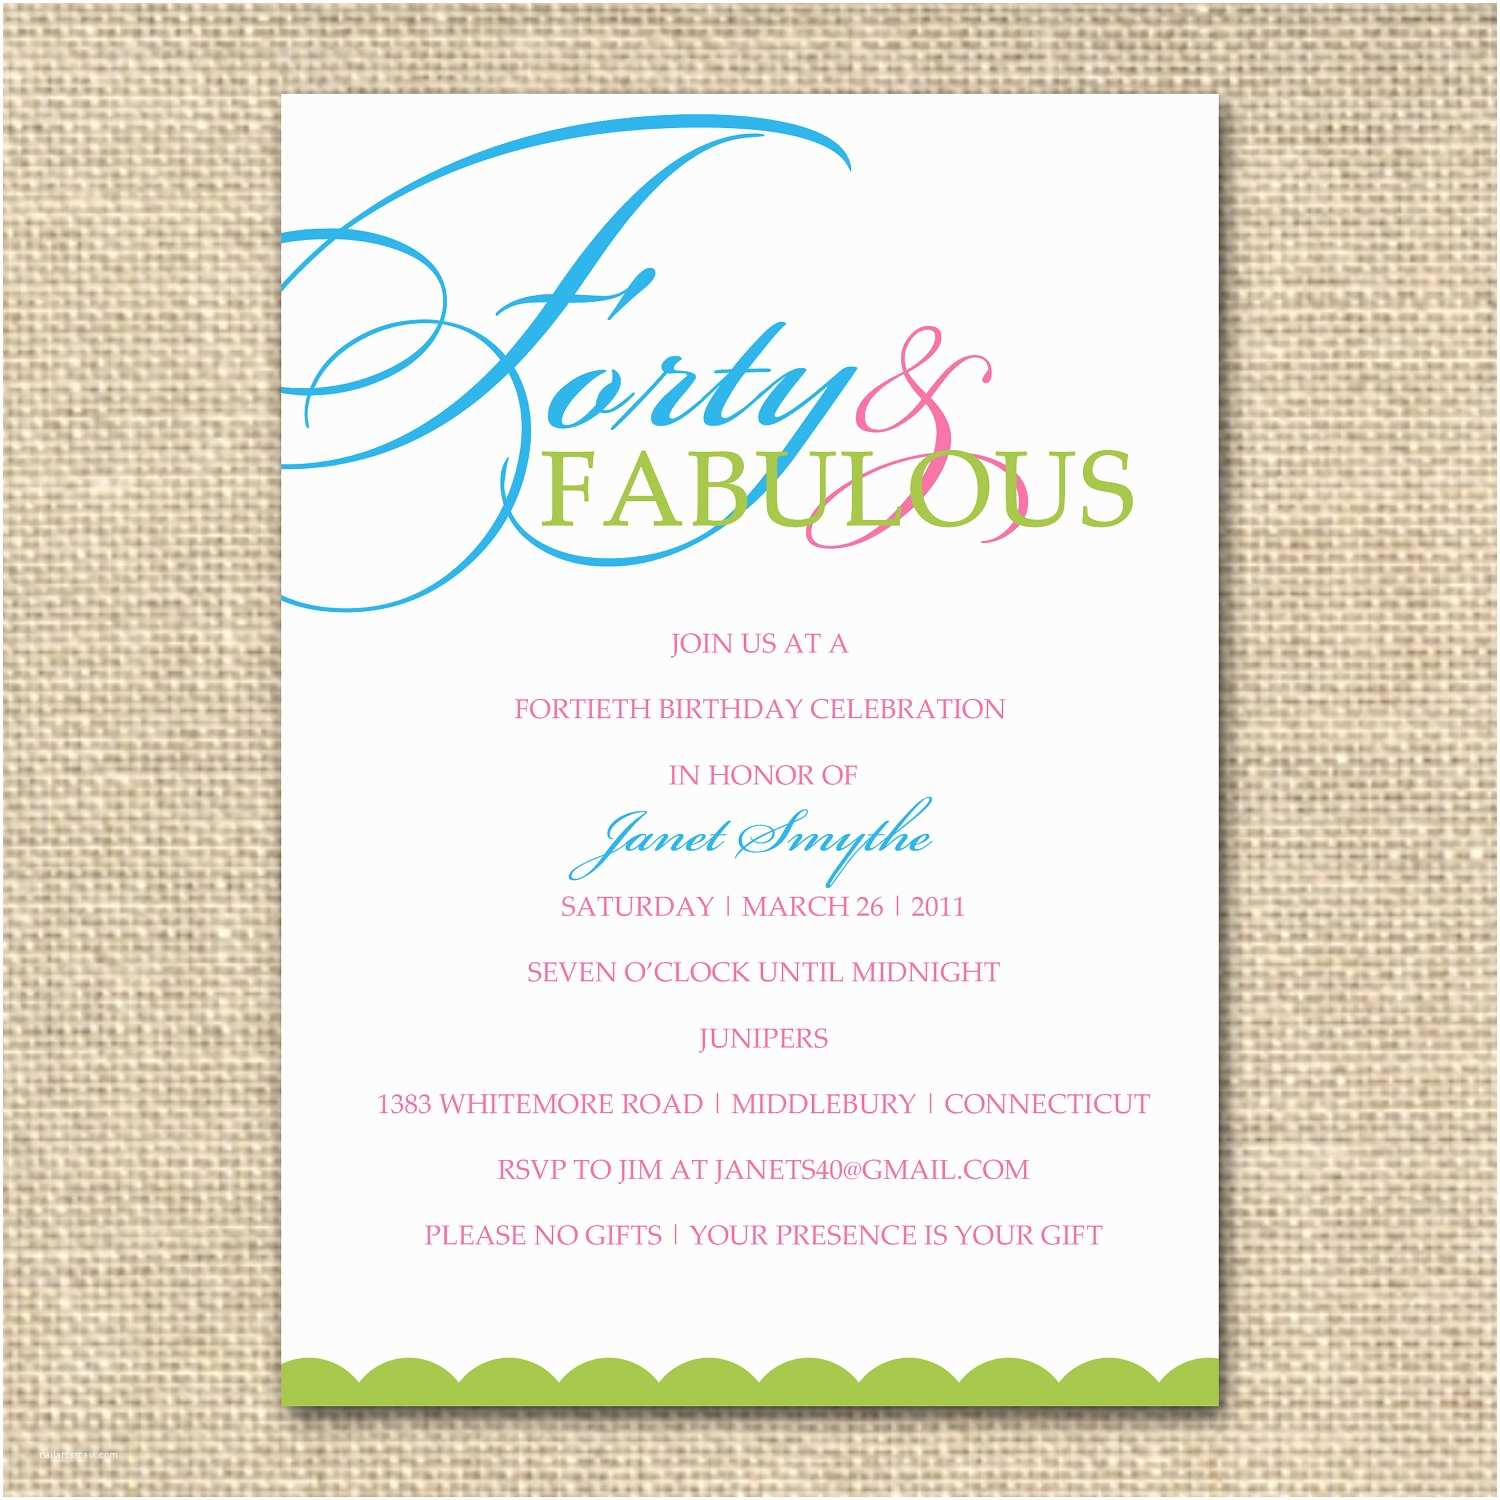 Design Your Own Party Invitations Birthday Party Invitation Wording